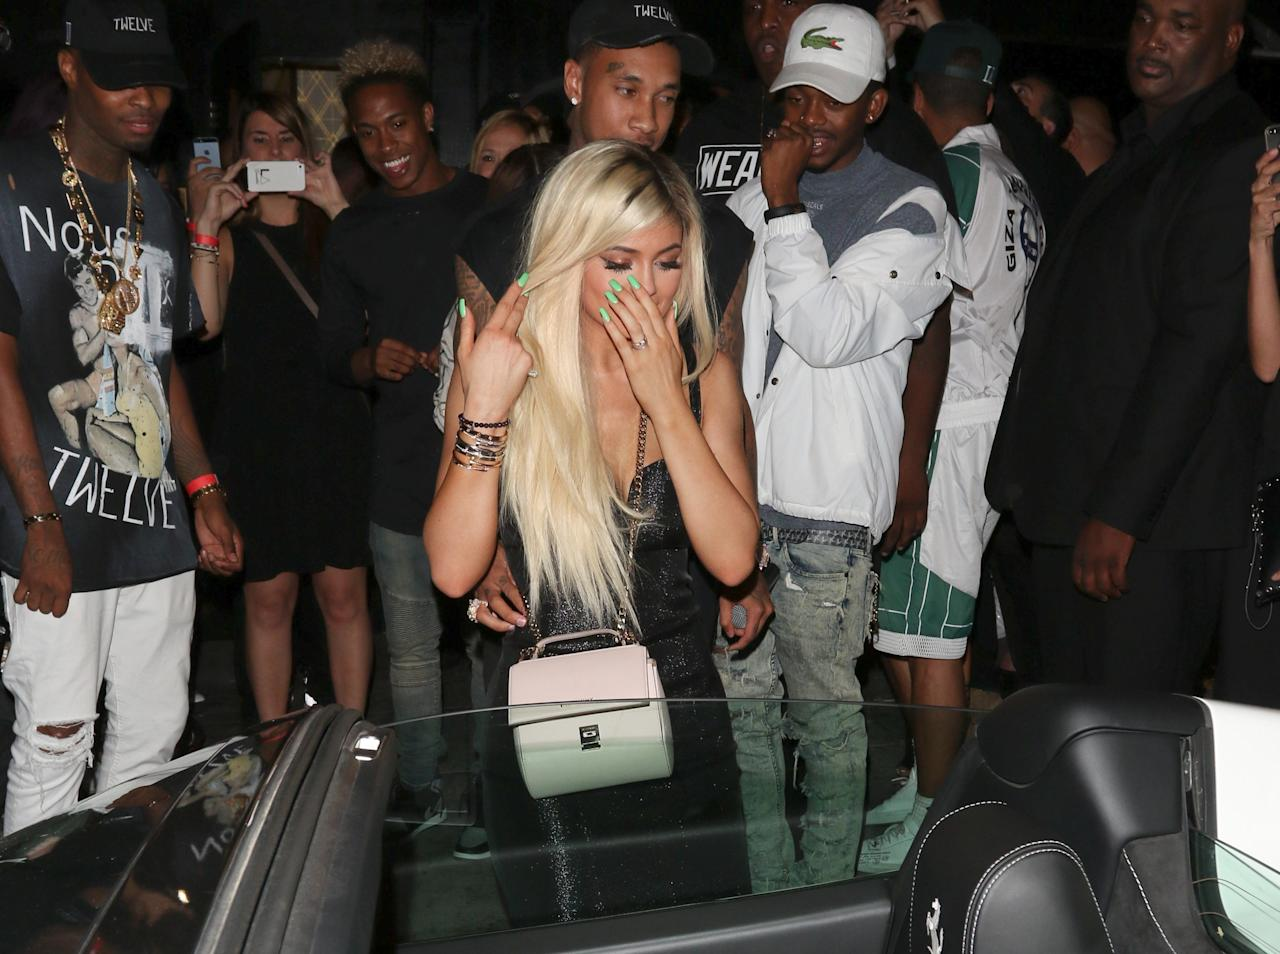 """<p>Did you get a car when you turned 18? It probably wasn't a brand-new $300,000+ Ferrari, was it? Tyga gave Kylie her a <a rel=""""nofollow"""" href=""""http://www.teenvogue.com/story/kylie-jenner-birthday-tyga-new-car?mbid=synd_yahooentertainment"""">slick white sports car</a> for her birthday last year, though it was <a rel=""""nofollow"""" href=""""http://www.teenvogue.com/story/kylie-jenner-birthday-ferrari-tyga-lease?mbid=synd_yahooentertainment"""">rumored he leased it</a> instead of buying it outright. Either way, we'll take it.</p>"""